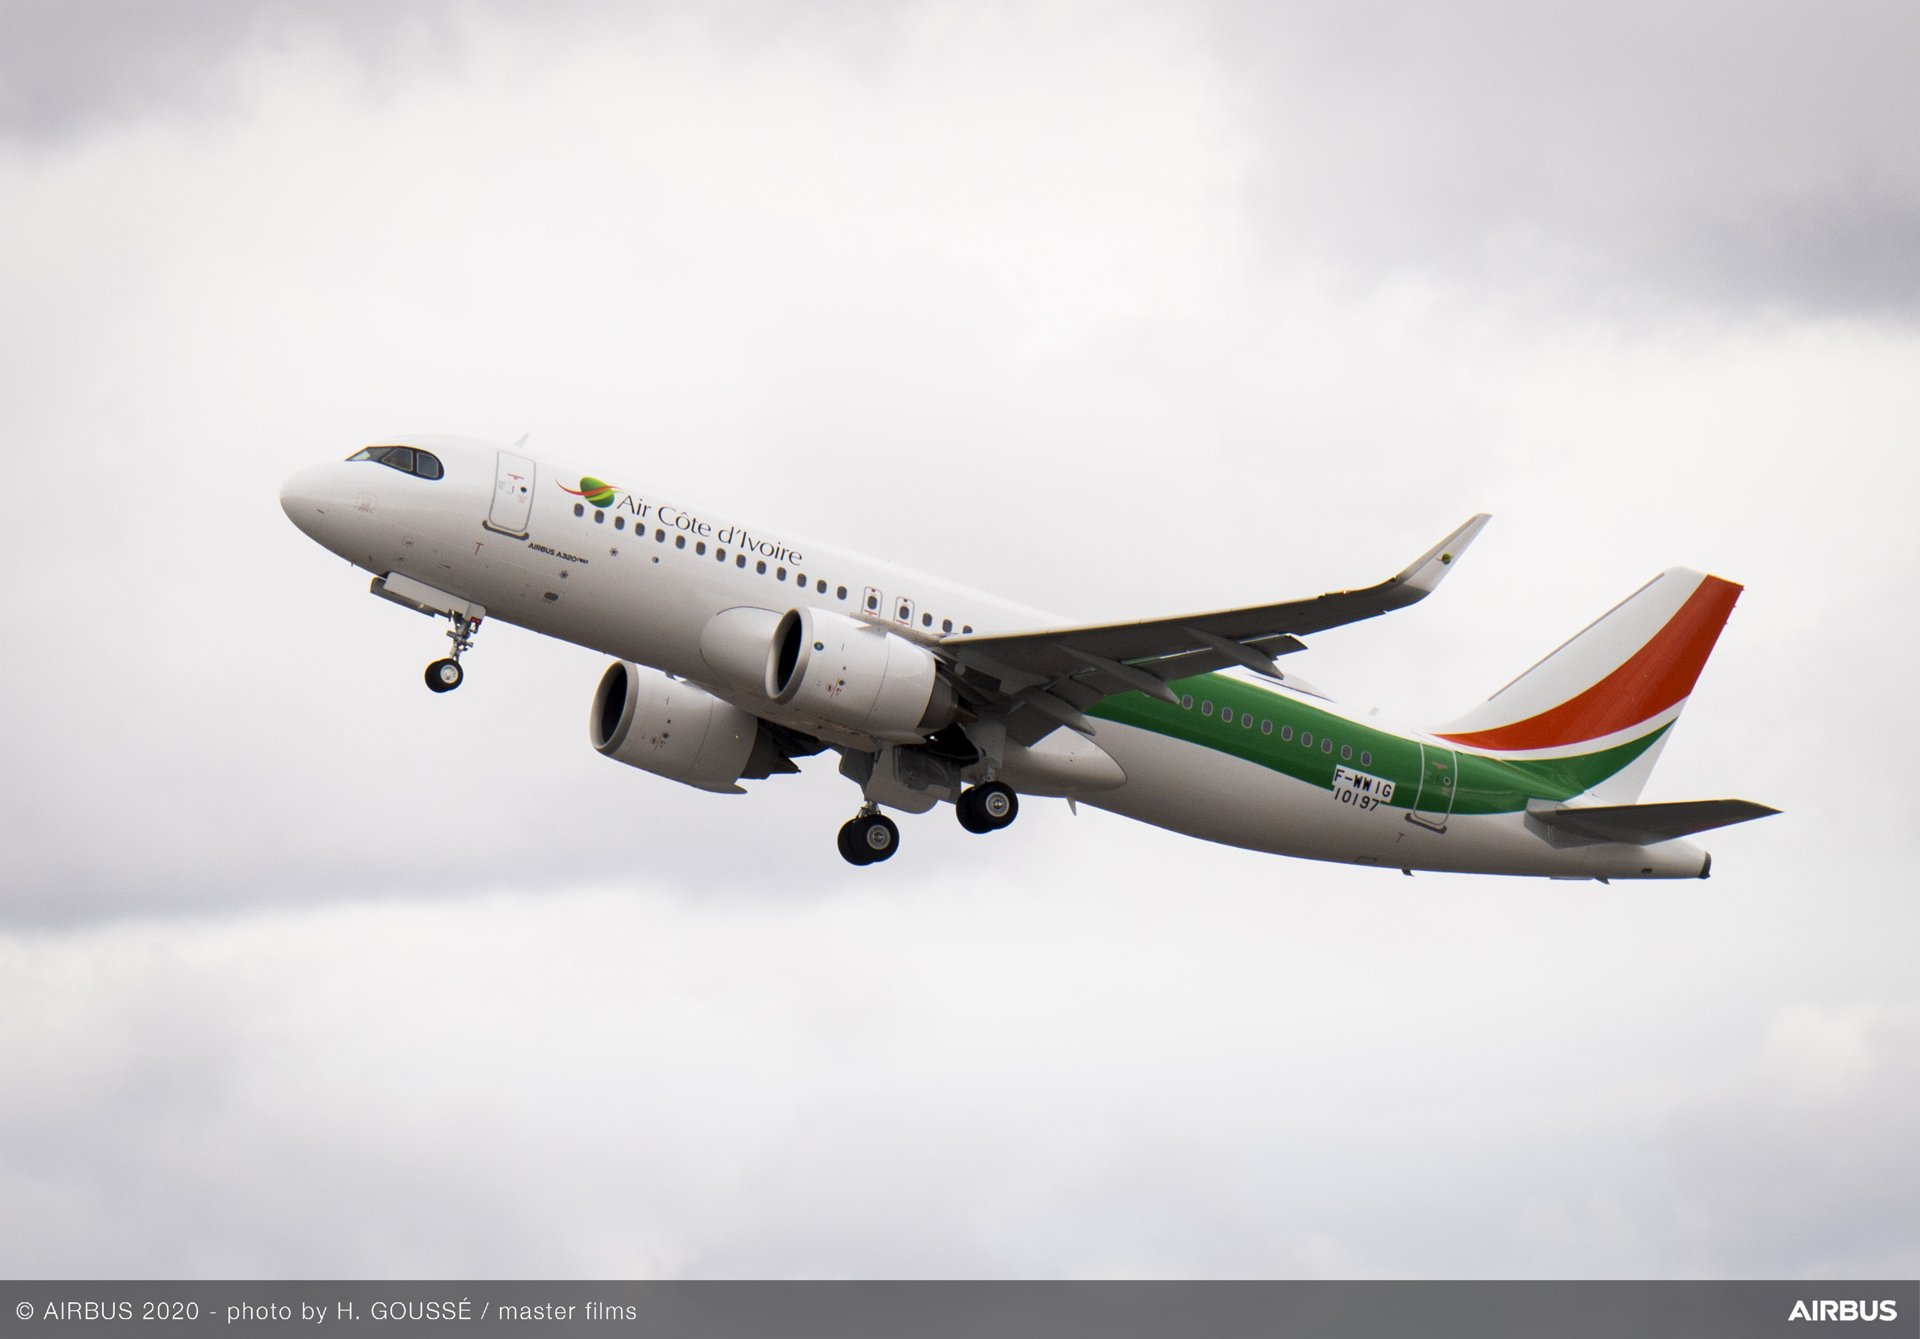 Air Côte d'Ivoire, Ivory Coast's flagship carrier based in Abidjan, has taken delivery of its first A320neo, becoming the first operator of the type in the West-African region. This latest generation aircraft will join Air Côte d'Ivoire's existing Airbus fleet of six aircraft.